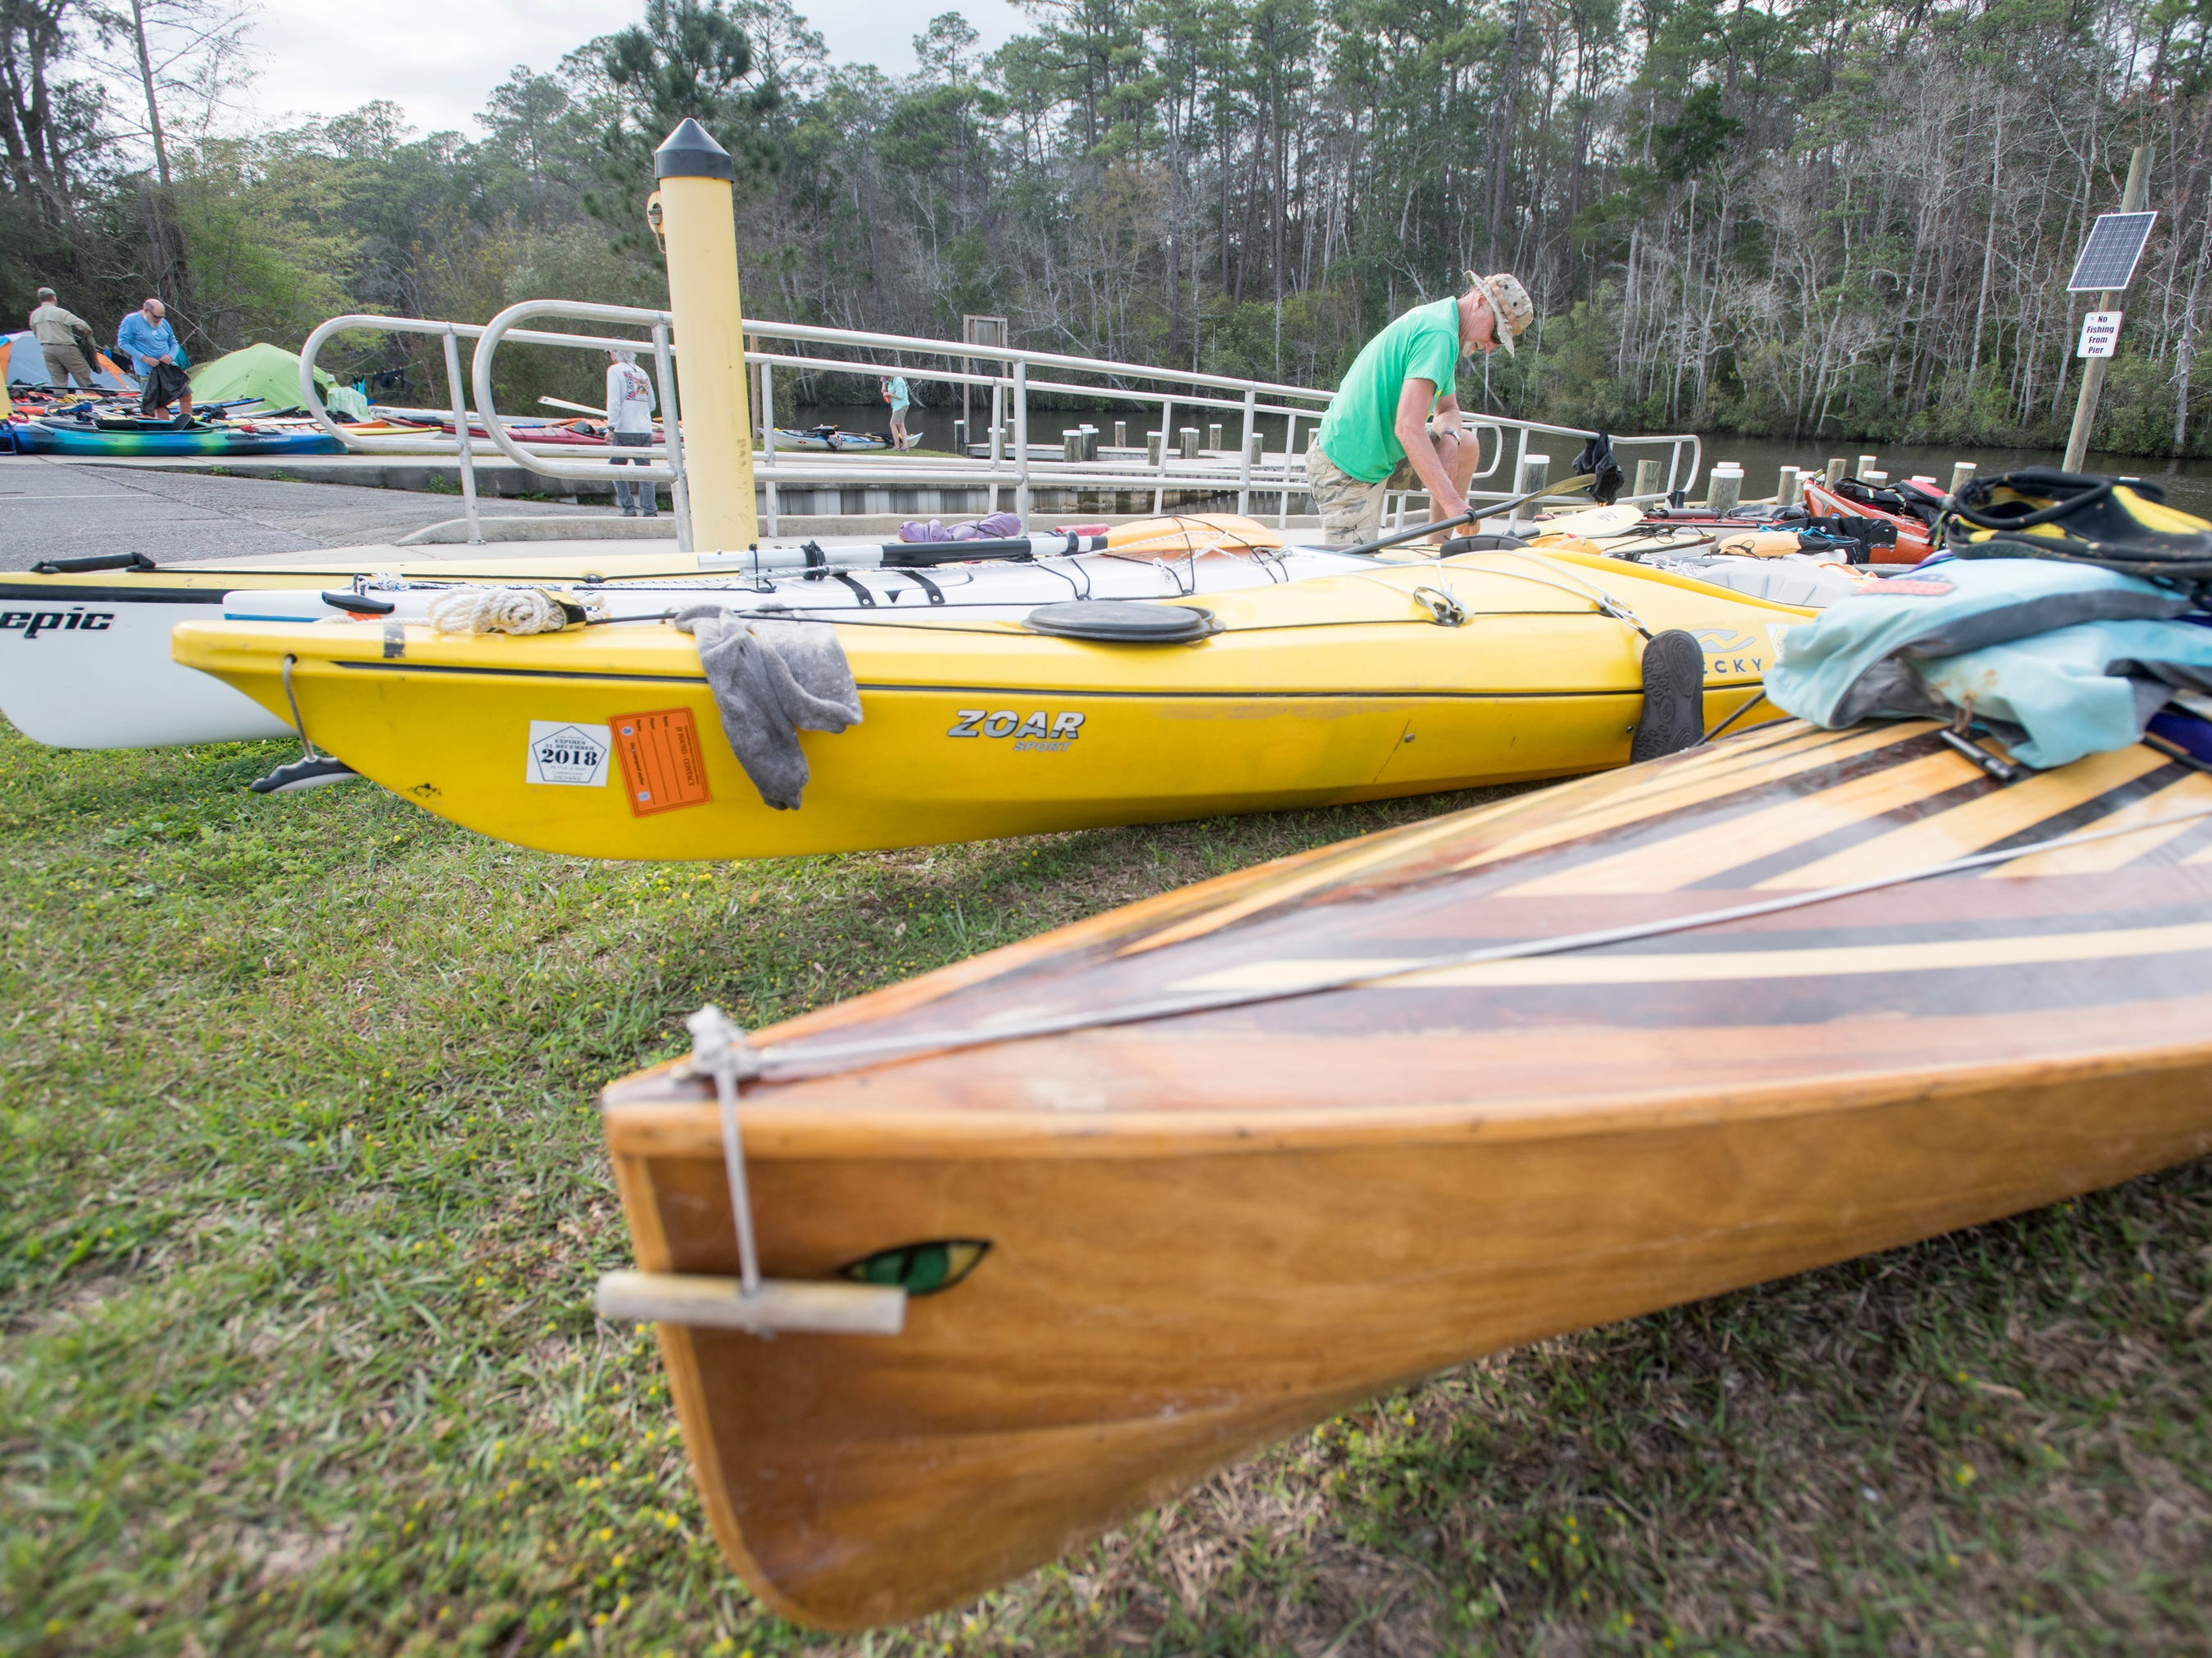 Paul Fogal, of Jim Thorpe, Pennsylvania, stores his gear at the Wilson Robertson Boat Ramp on the Perdido River in Pensacola on Monday, March 11, 2019.  Paddle Florida is hosting 60 paddlers on a 5-day, 60-mile journey from Otto Hill to Perdido Pass.  Florida is currently working with Alabama to establish a paddling trail on the Perdido River.